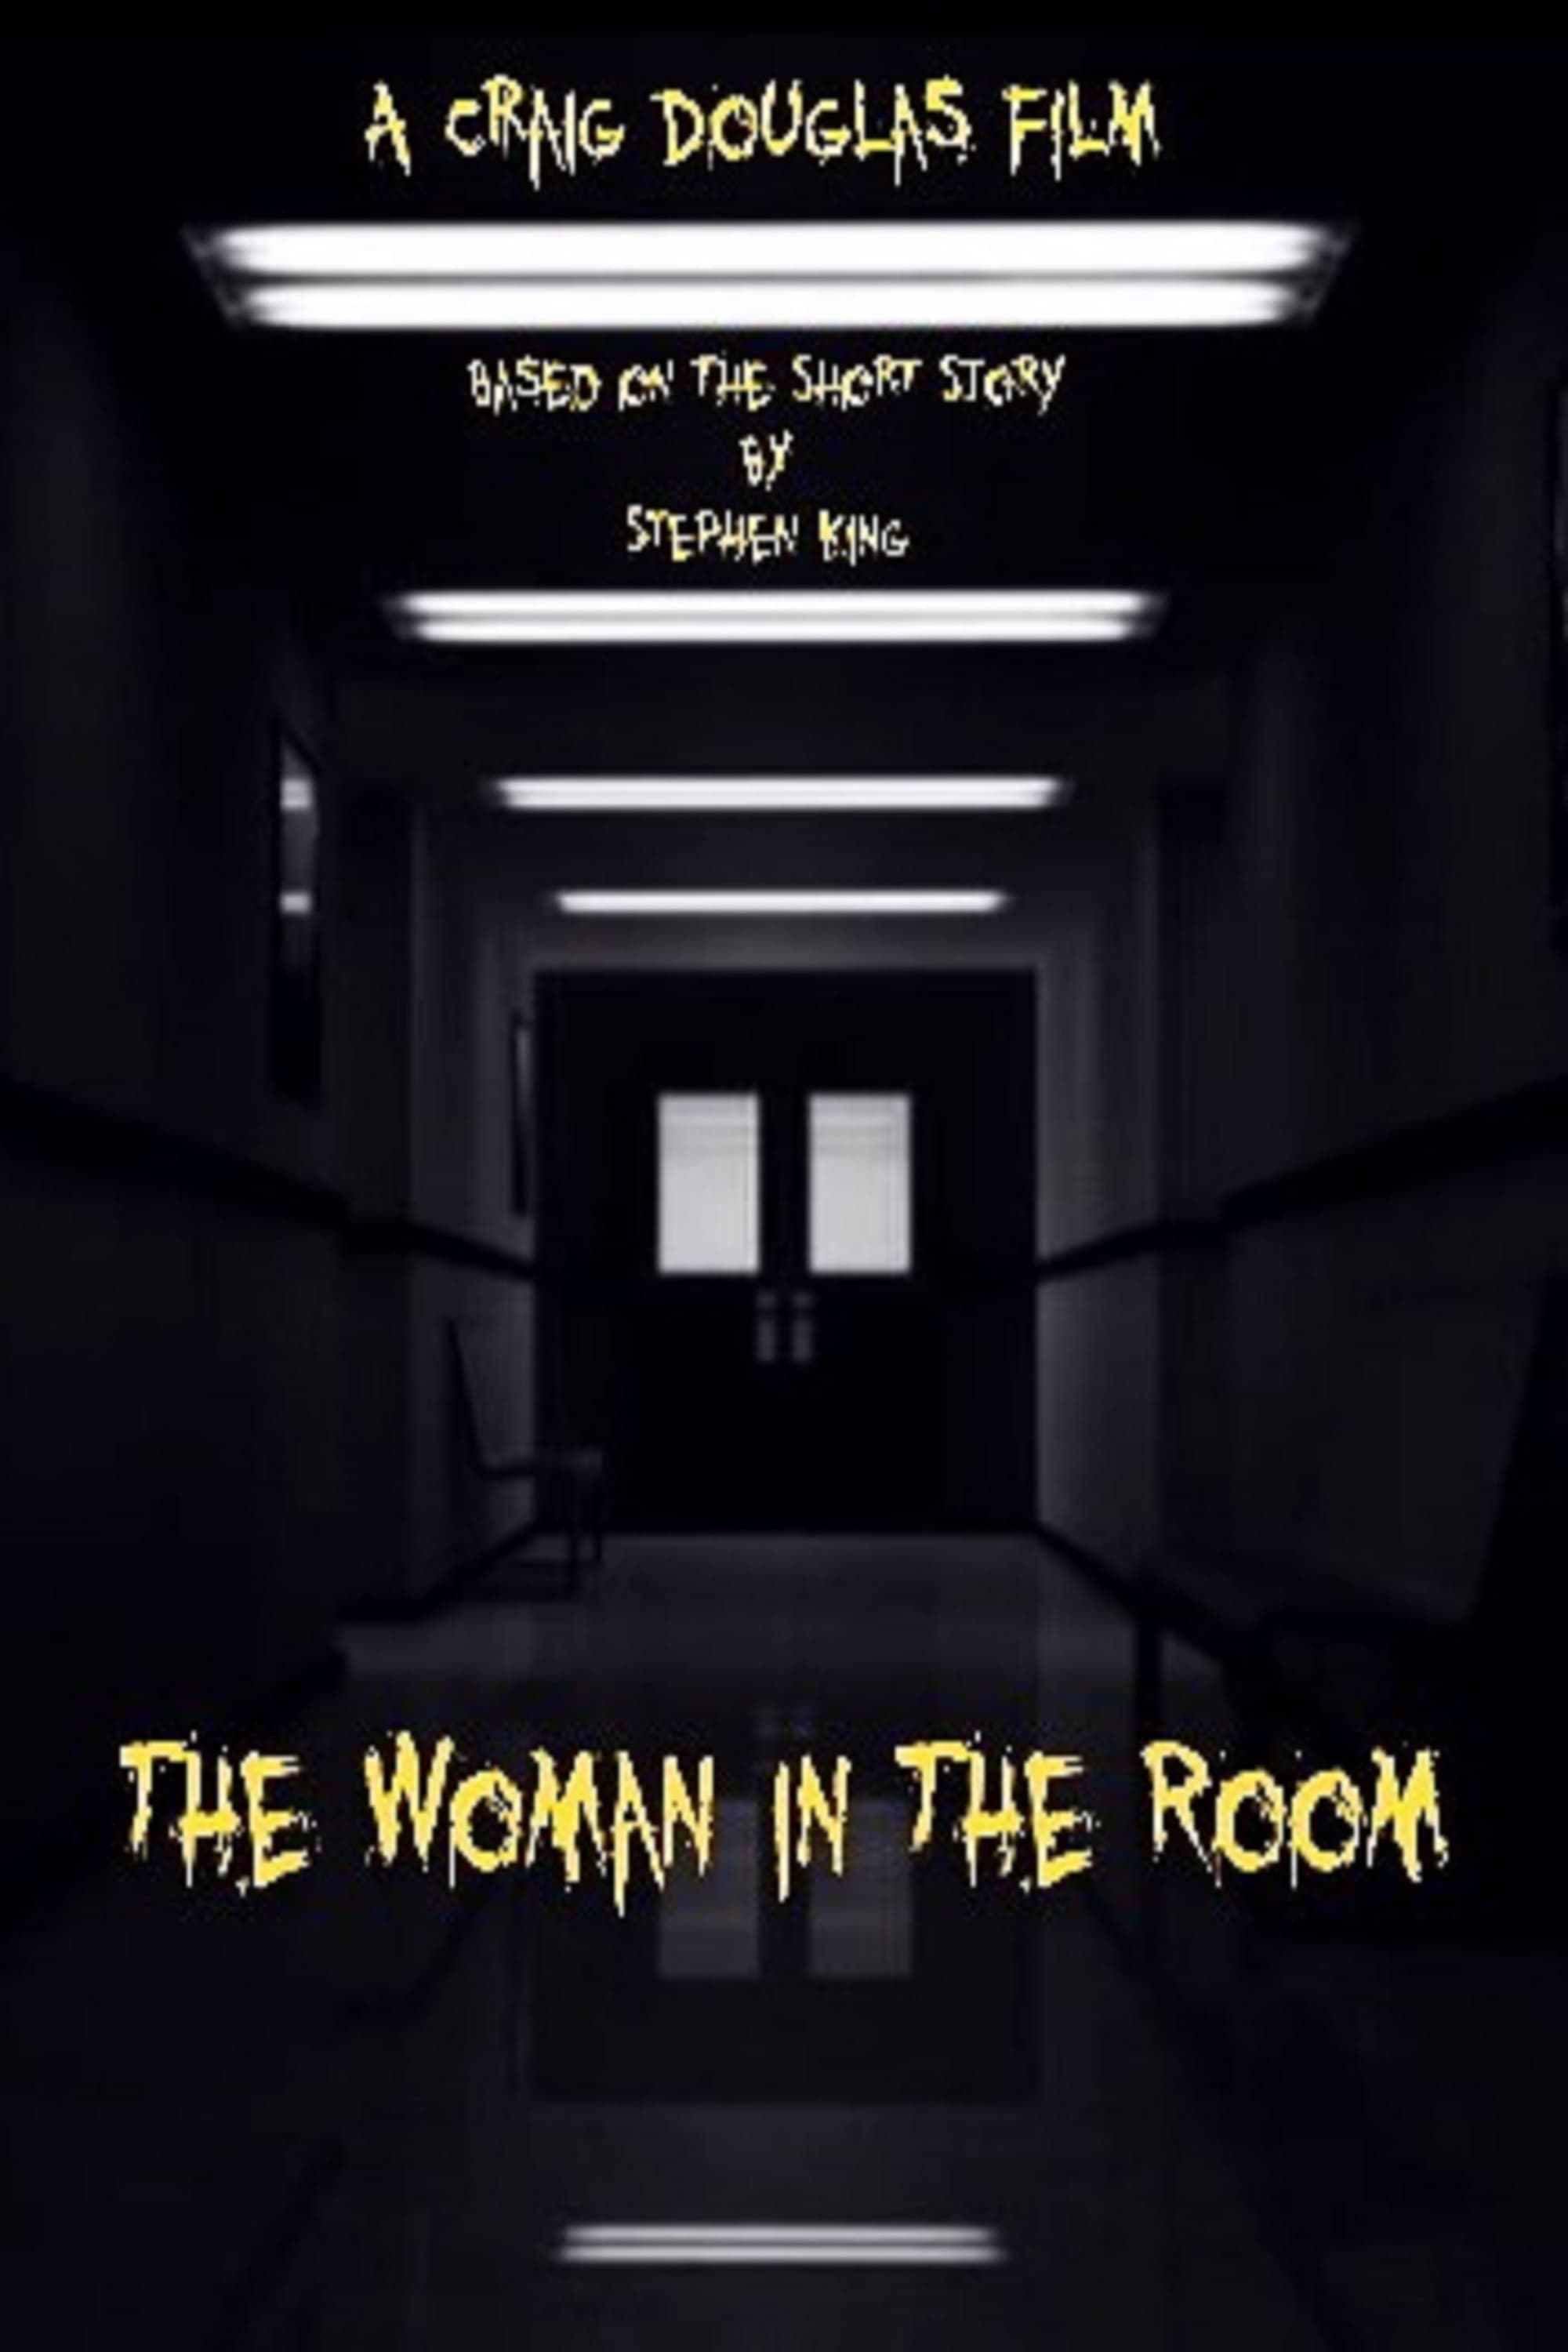 The Woman in the Room (1970)